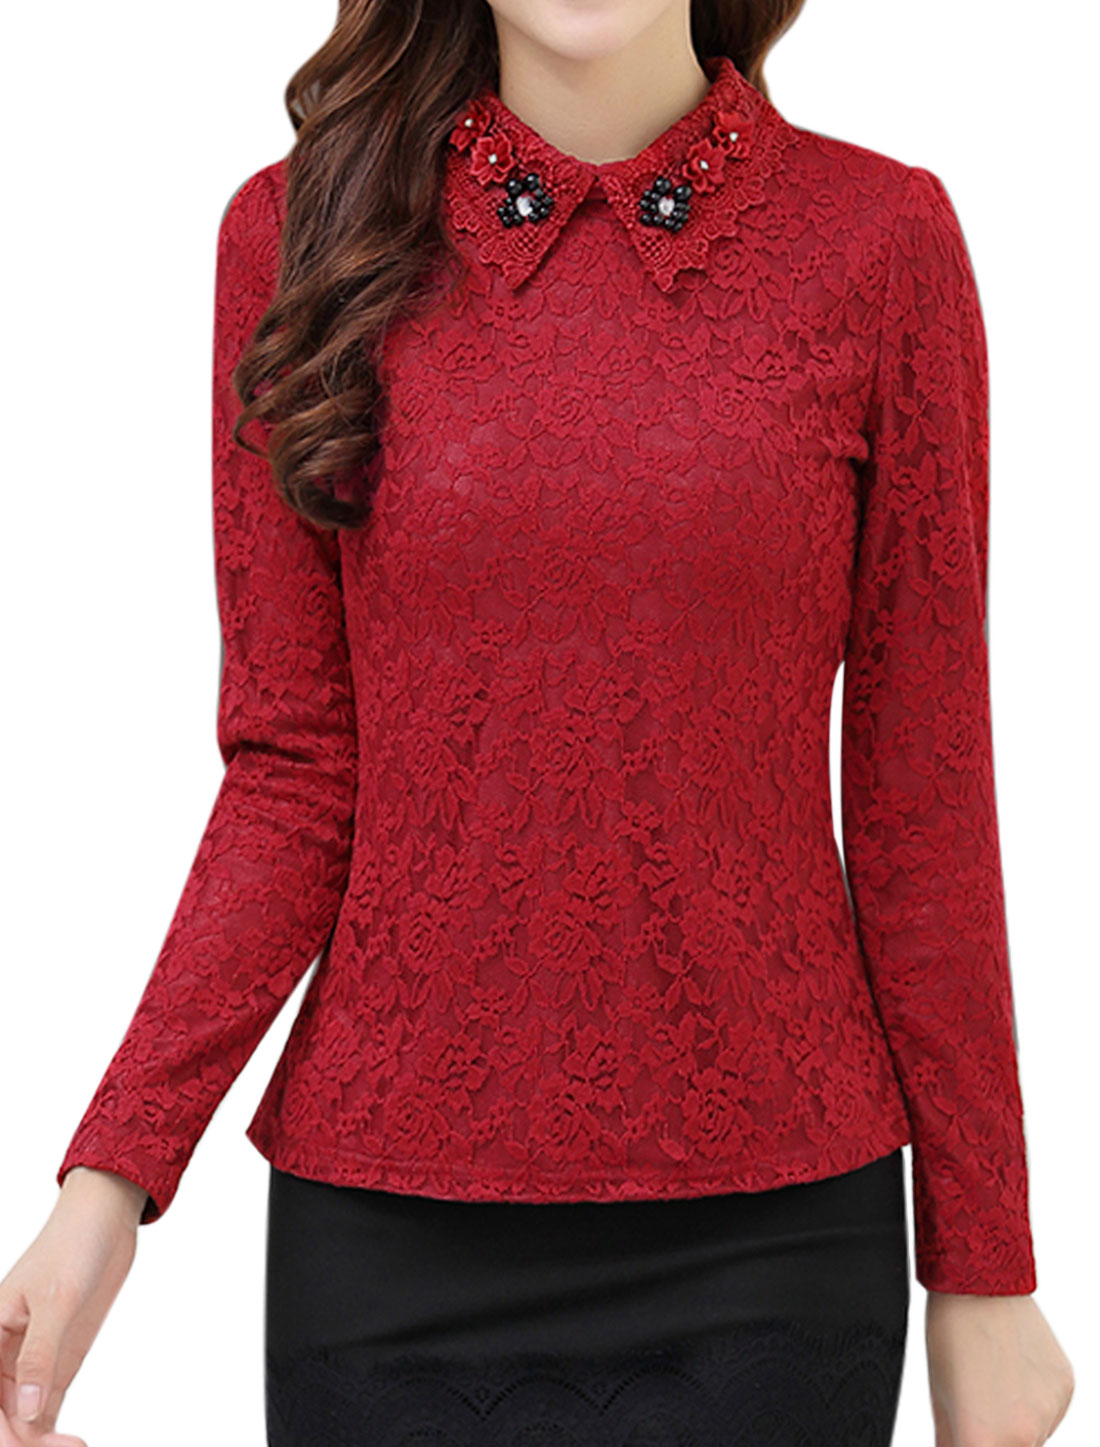 Women Beads Rhinetones Embellished Slim Fit Lace Top Red M